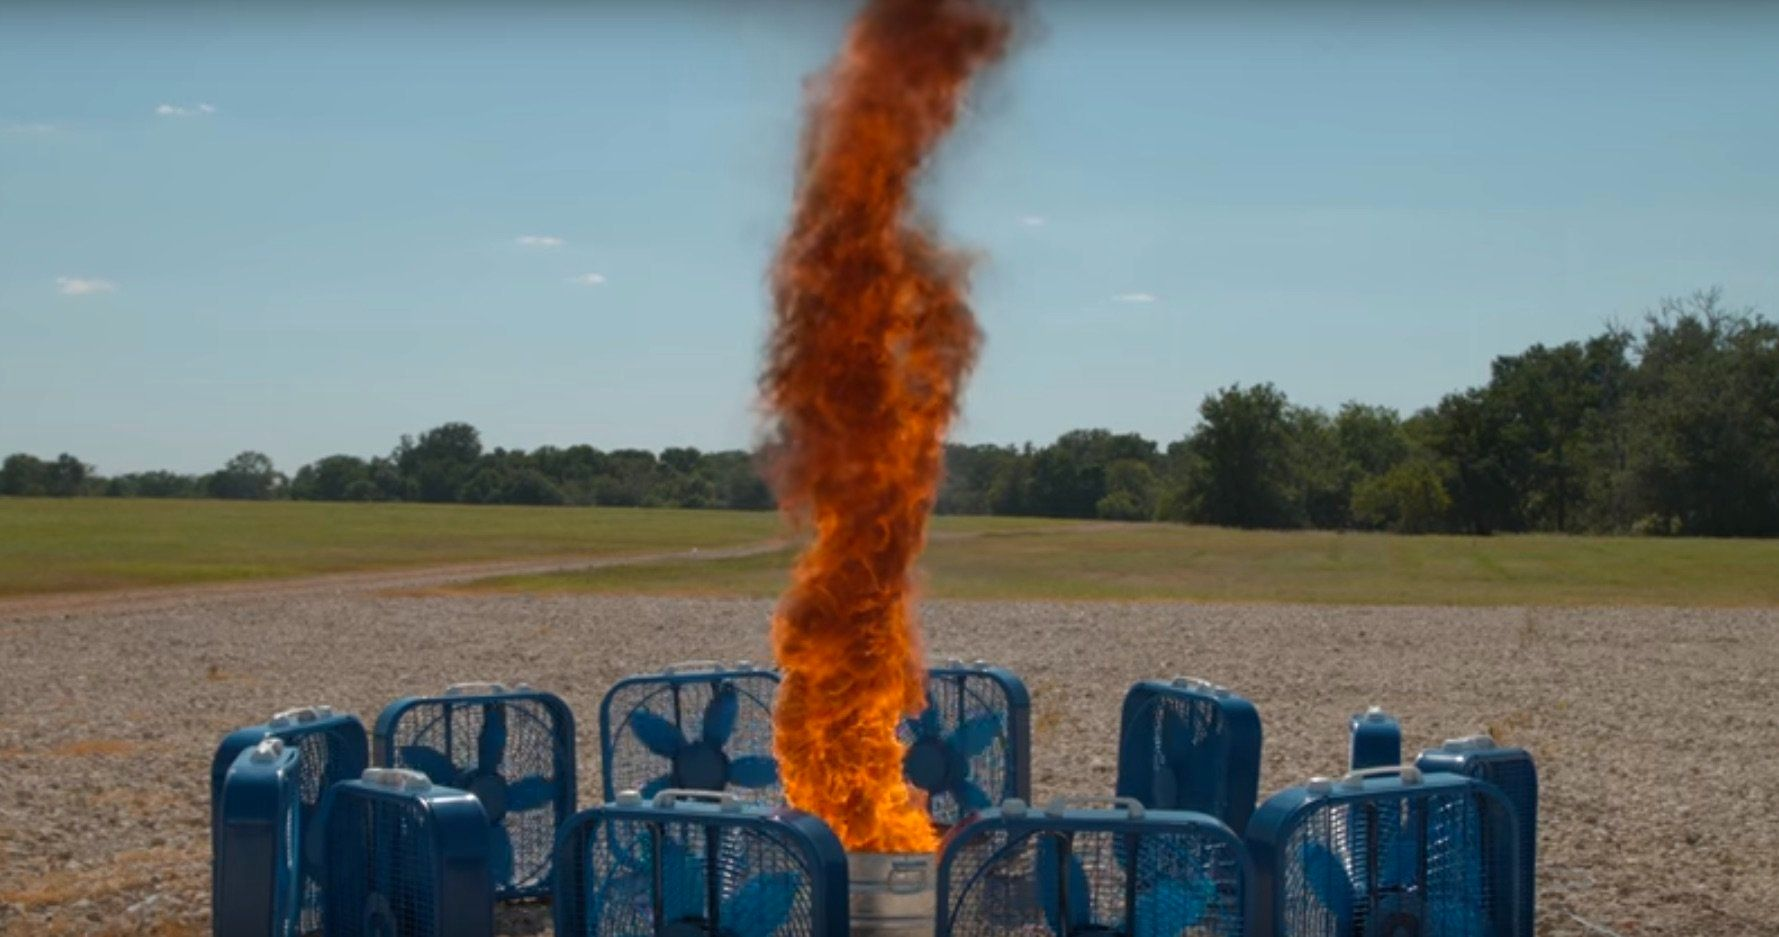 A fire tornado caught in high definition and slow motion.